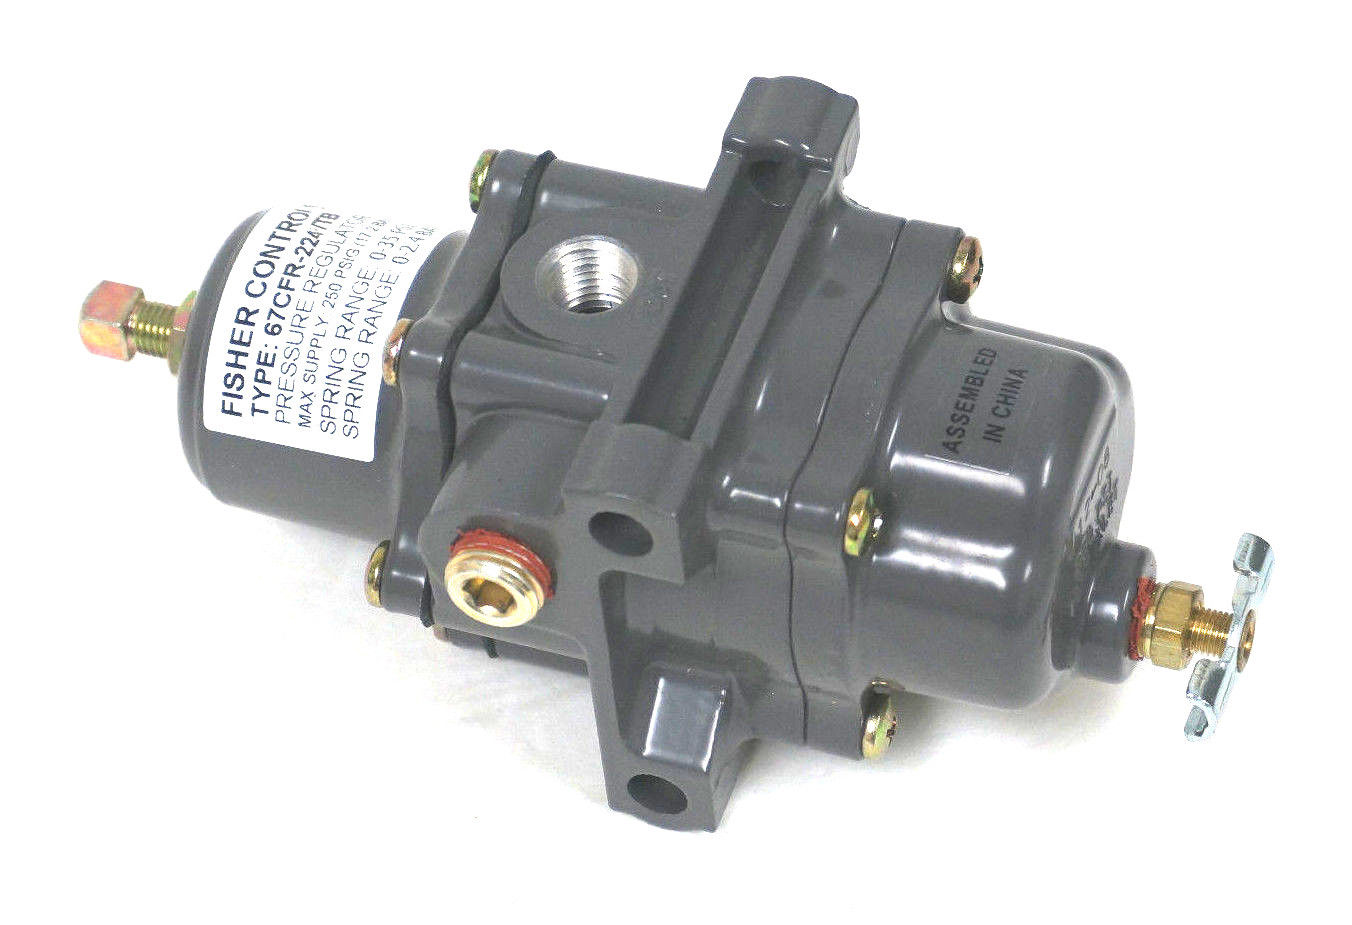 contactor parts with New Fisher Controls 67cfr 224tb Pressure Regulator 67cfr224tb on 25 Schneider Gv2 Mag o Thermal Circuit Breakers in addition Dilm7 10 24vdc as well 136 Triumph Bonneville Rambler likewise 3rh1921 1fa22 furthermore 3 Phase Contactor With Start Stop Wiring Diagram.